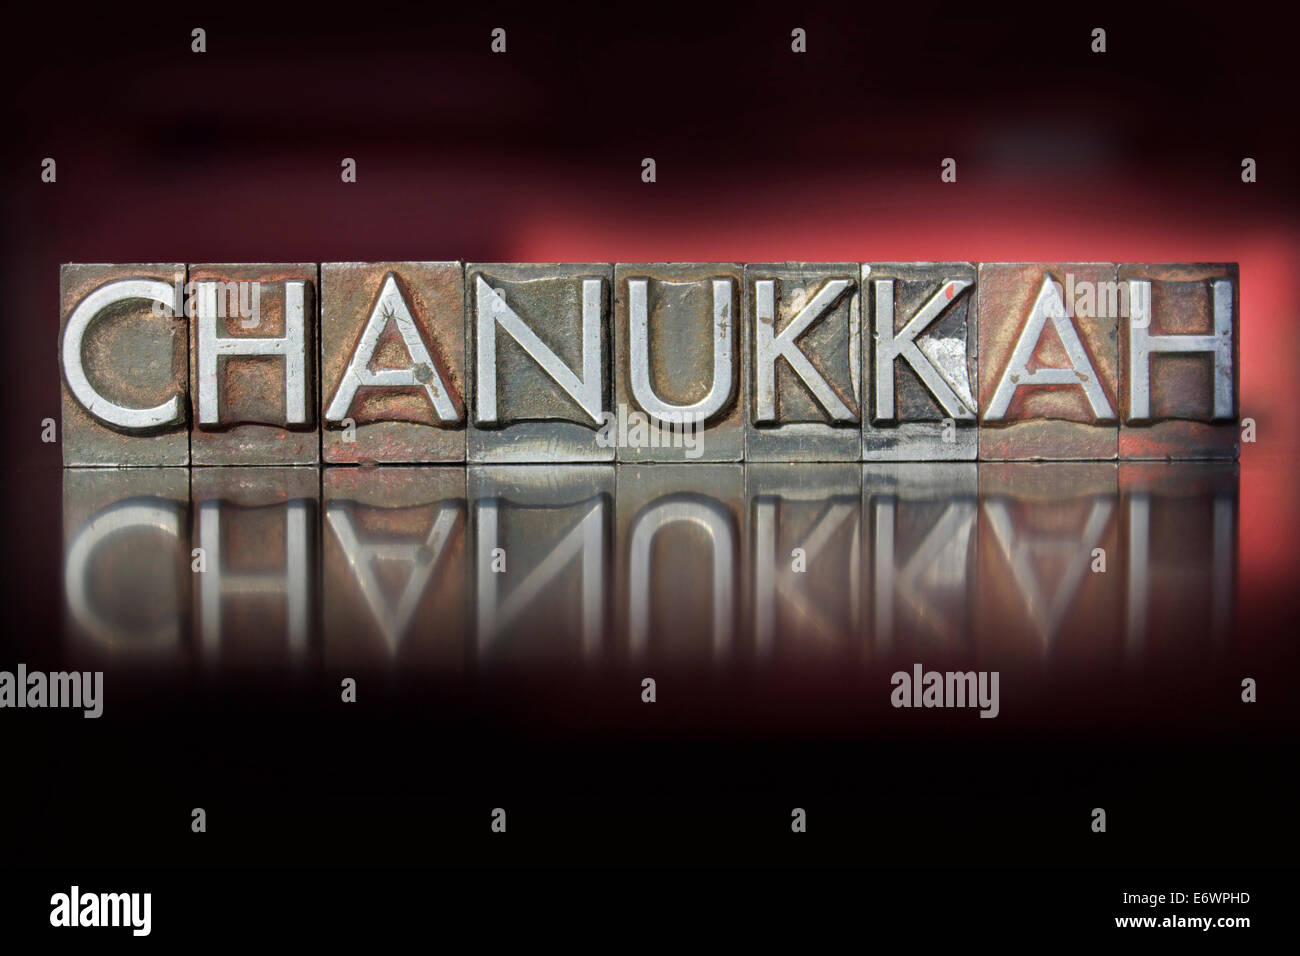 The word Chanukkah written in vintage letterpress type - Stock Image